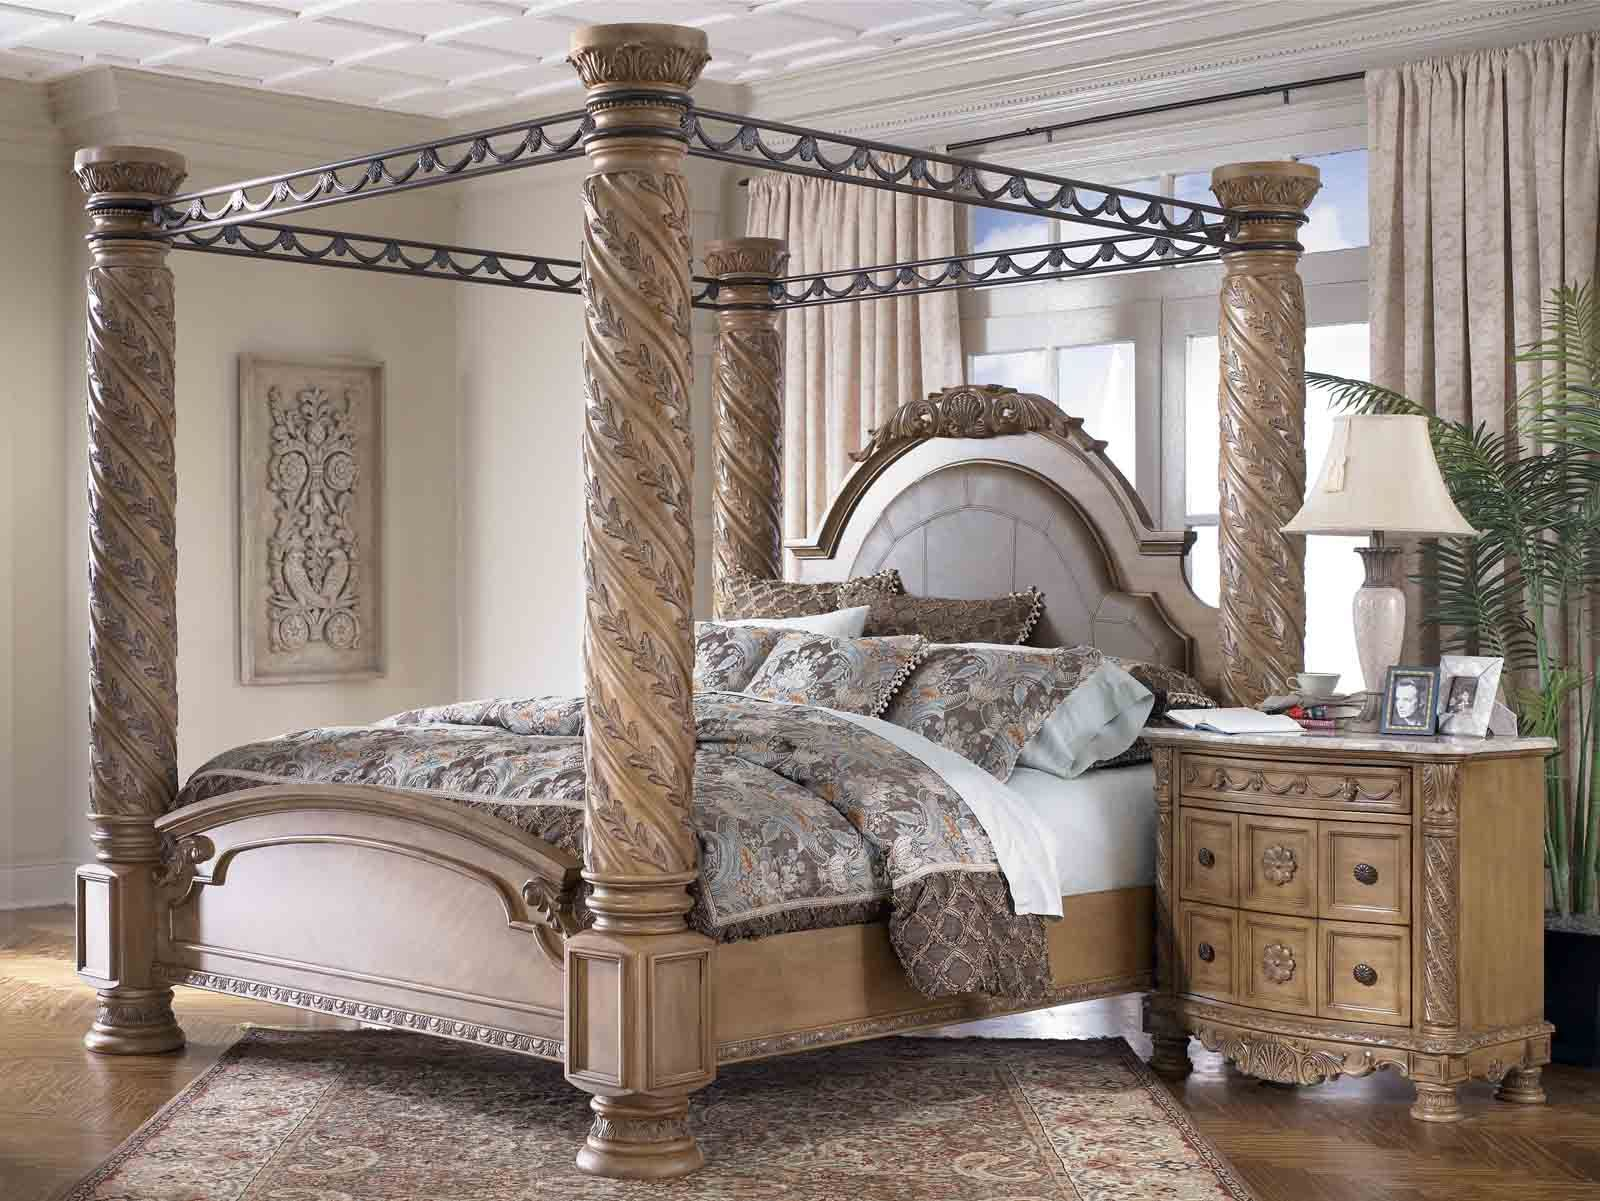 Pillar Bed Google Search Wood Canopy Bed King Size Canopy Bed